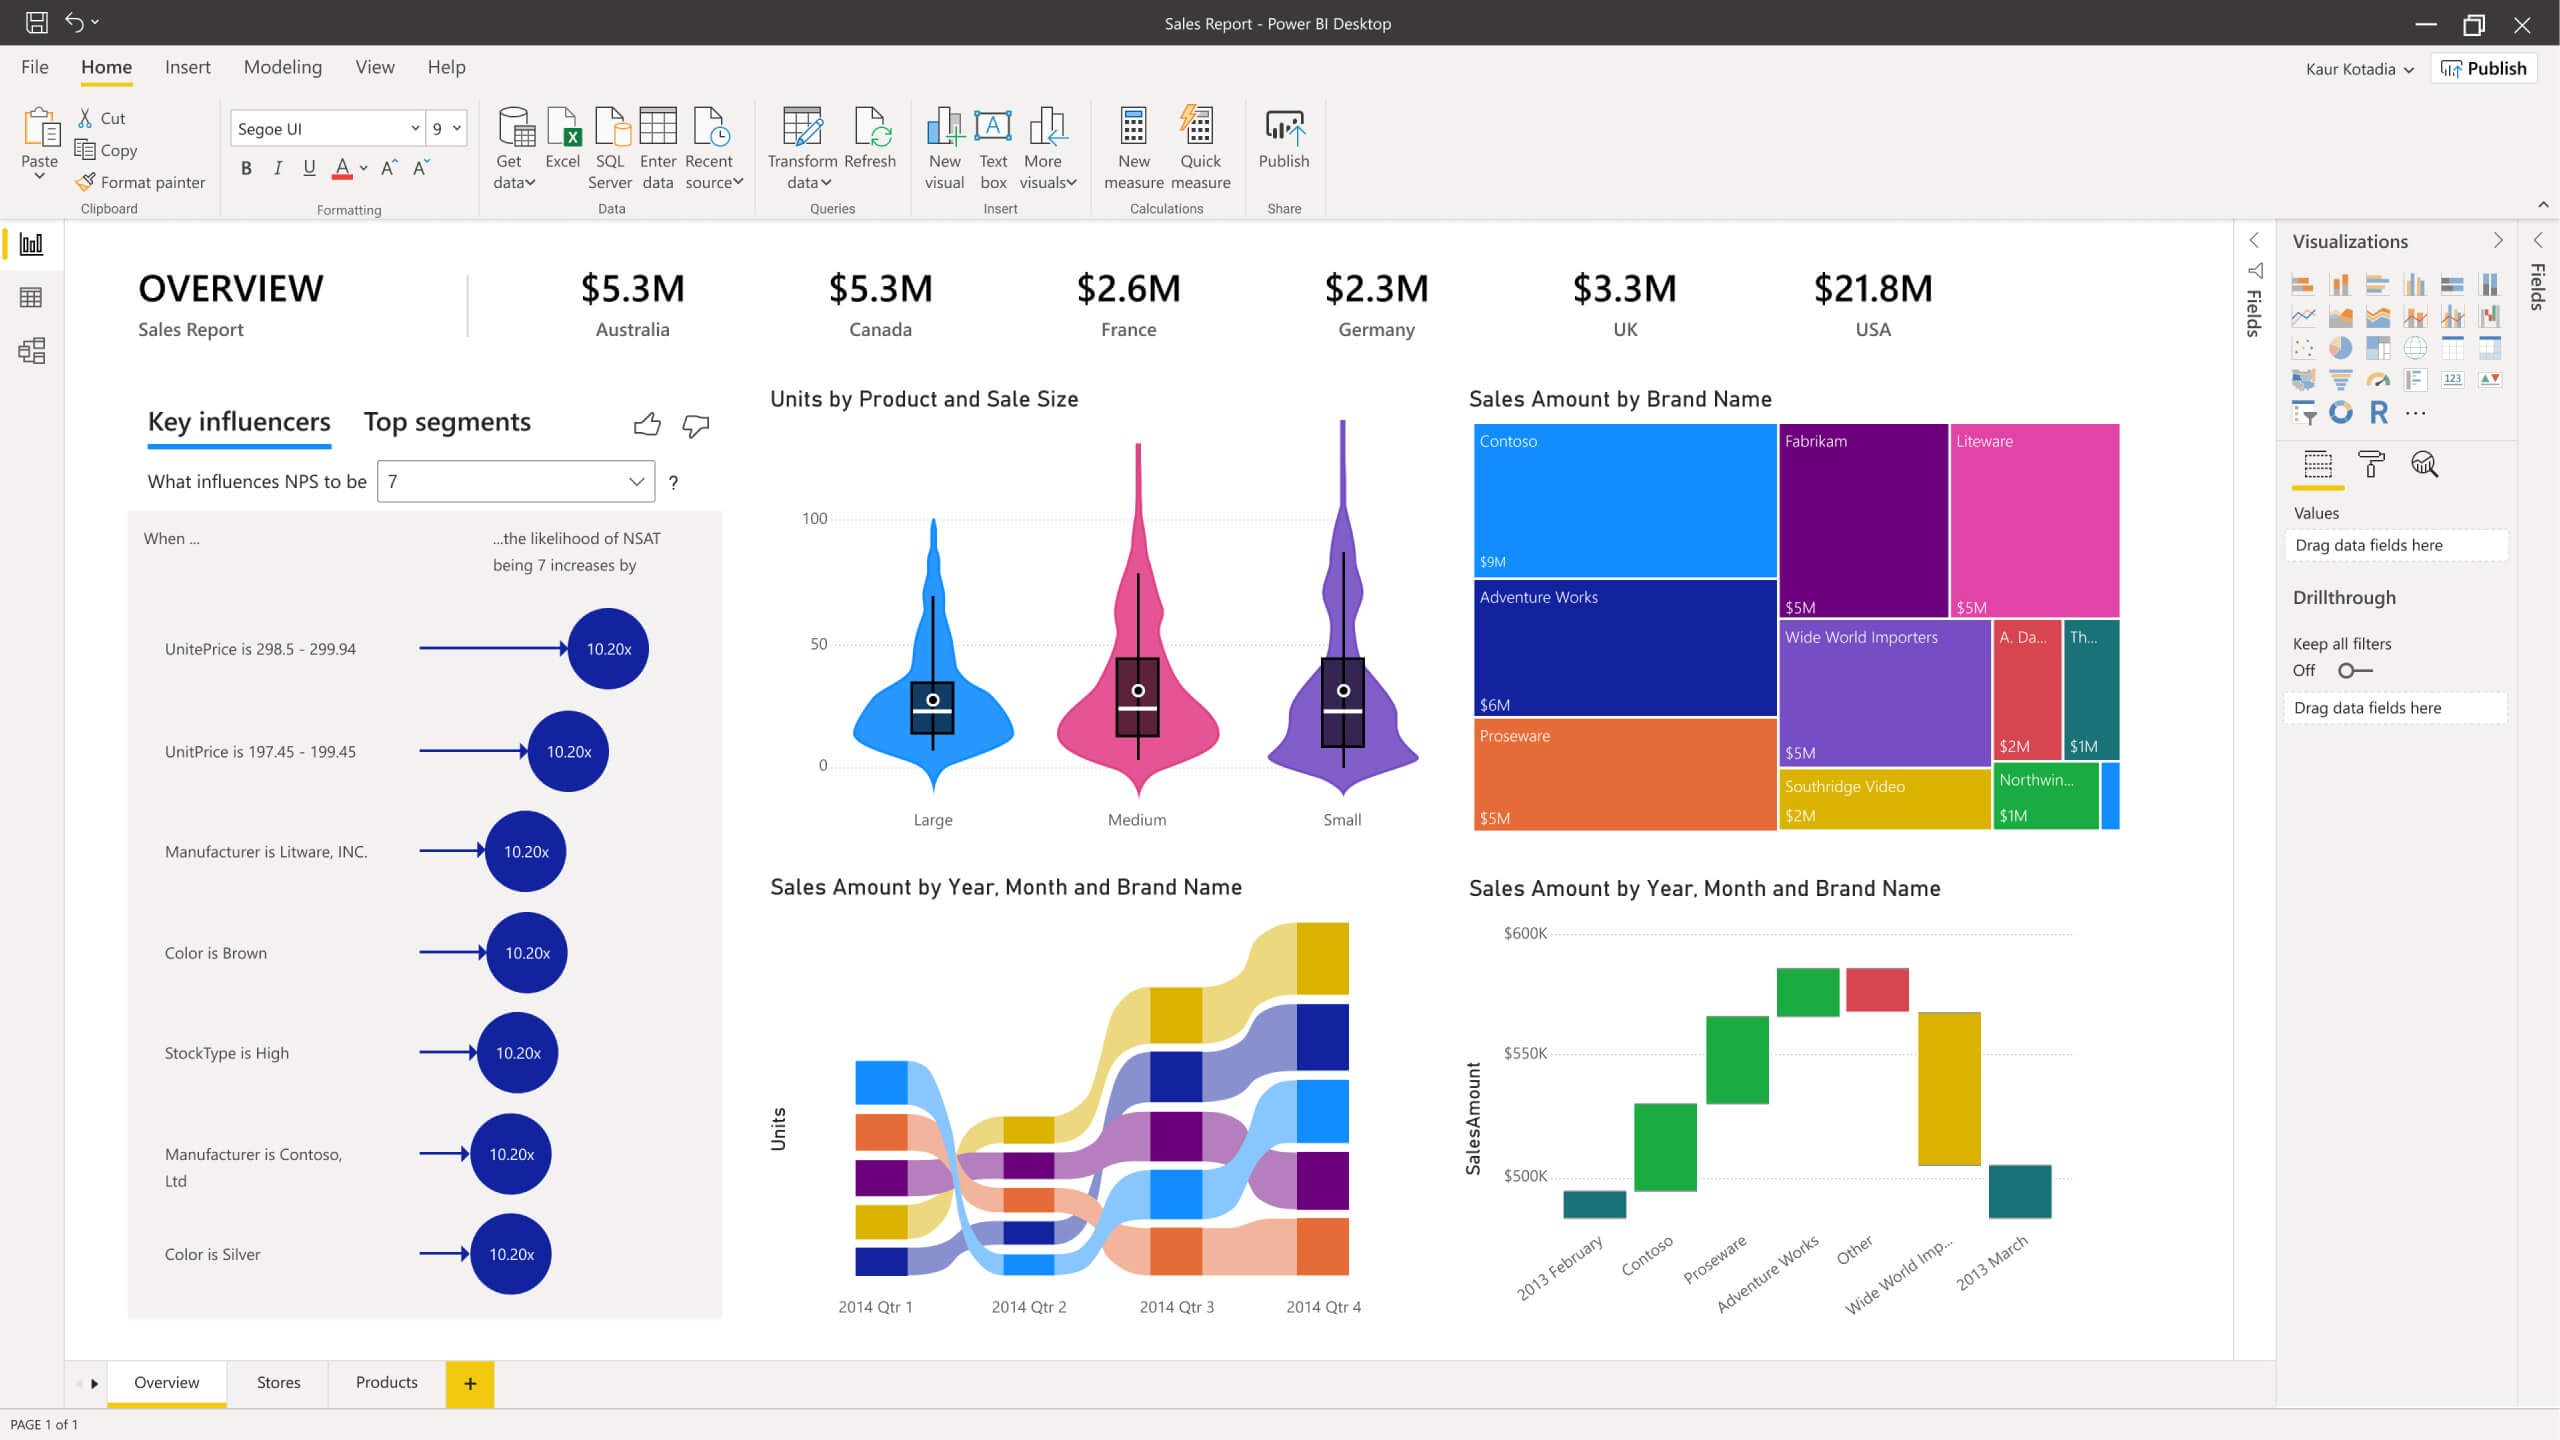 Software de inteligencia de negocios: Microsoft Power BI